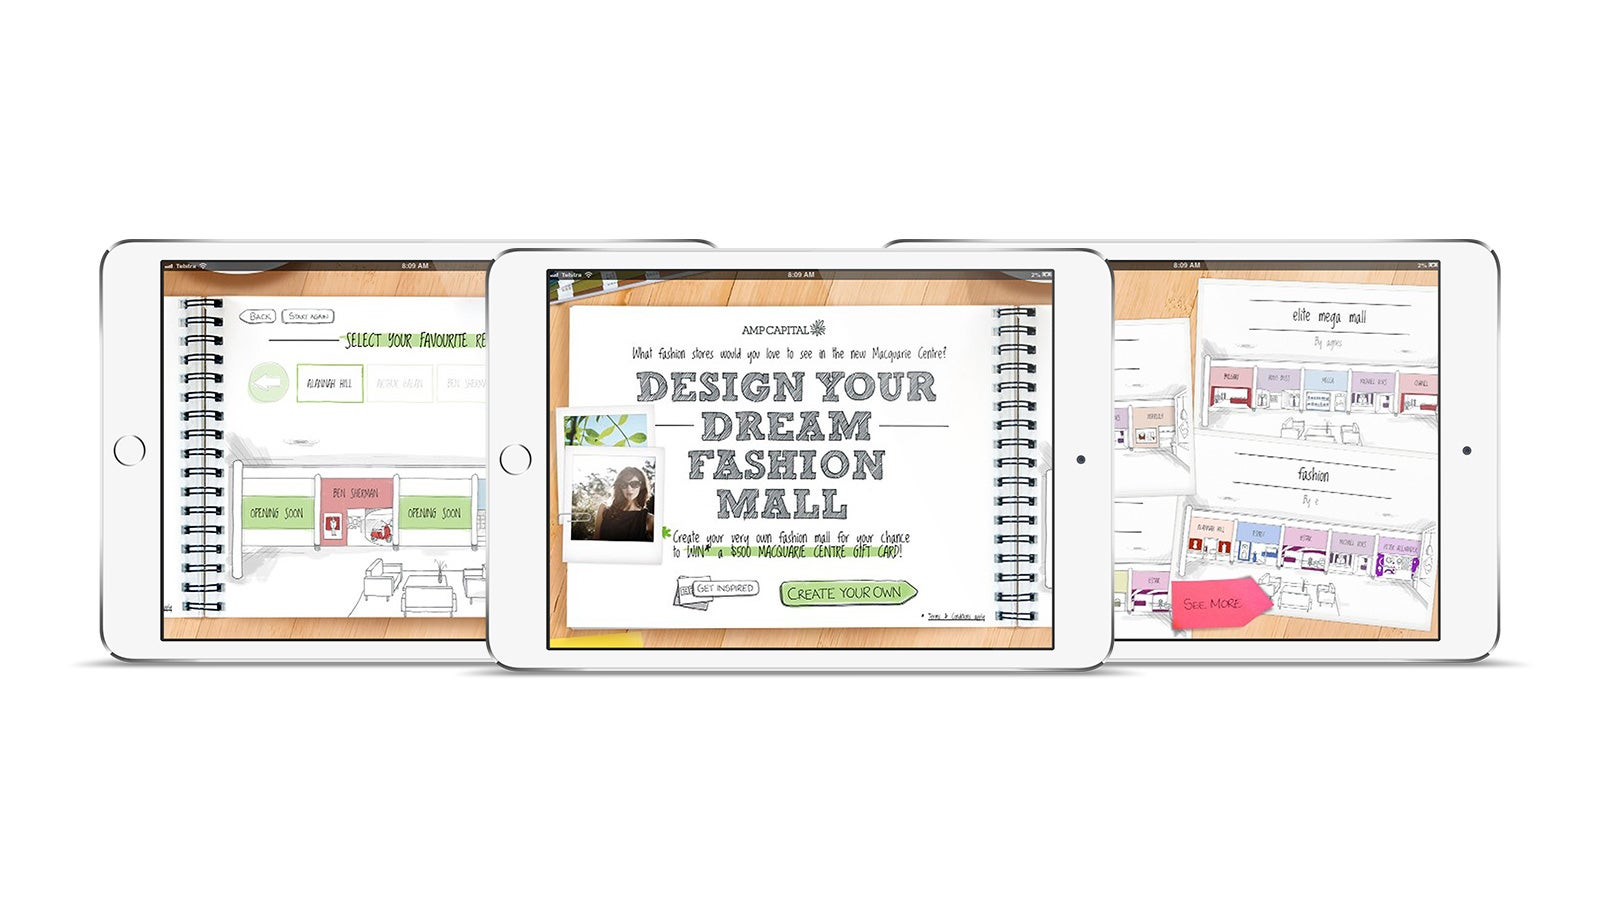 AMP   Design your dream fashion mall tool on tablet   Devotion